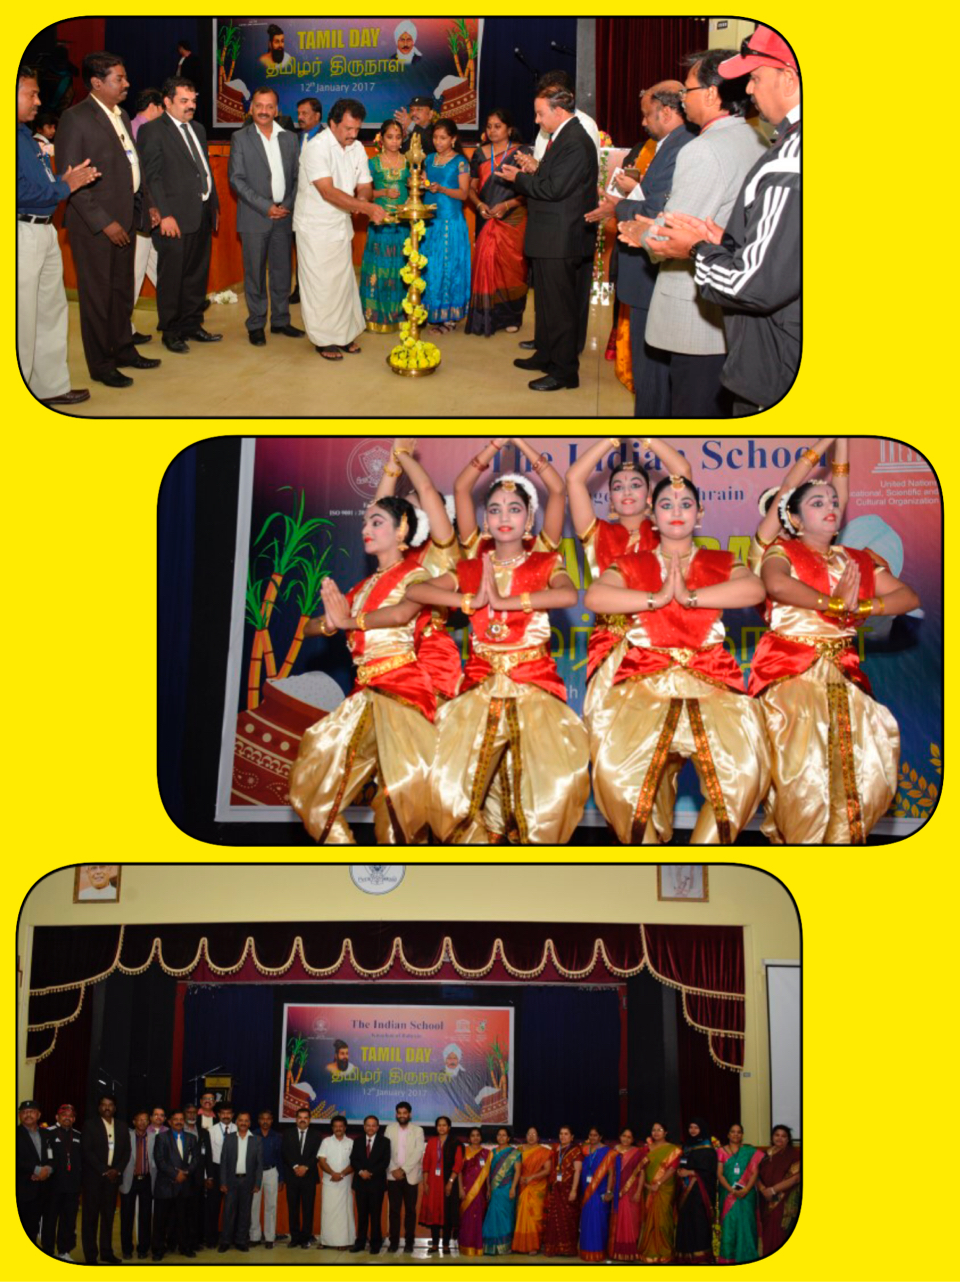 TAMIL DAY CELEBRATED IN ISB